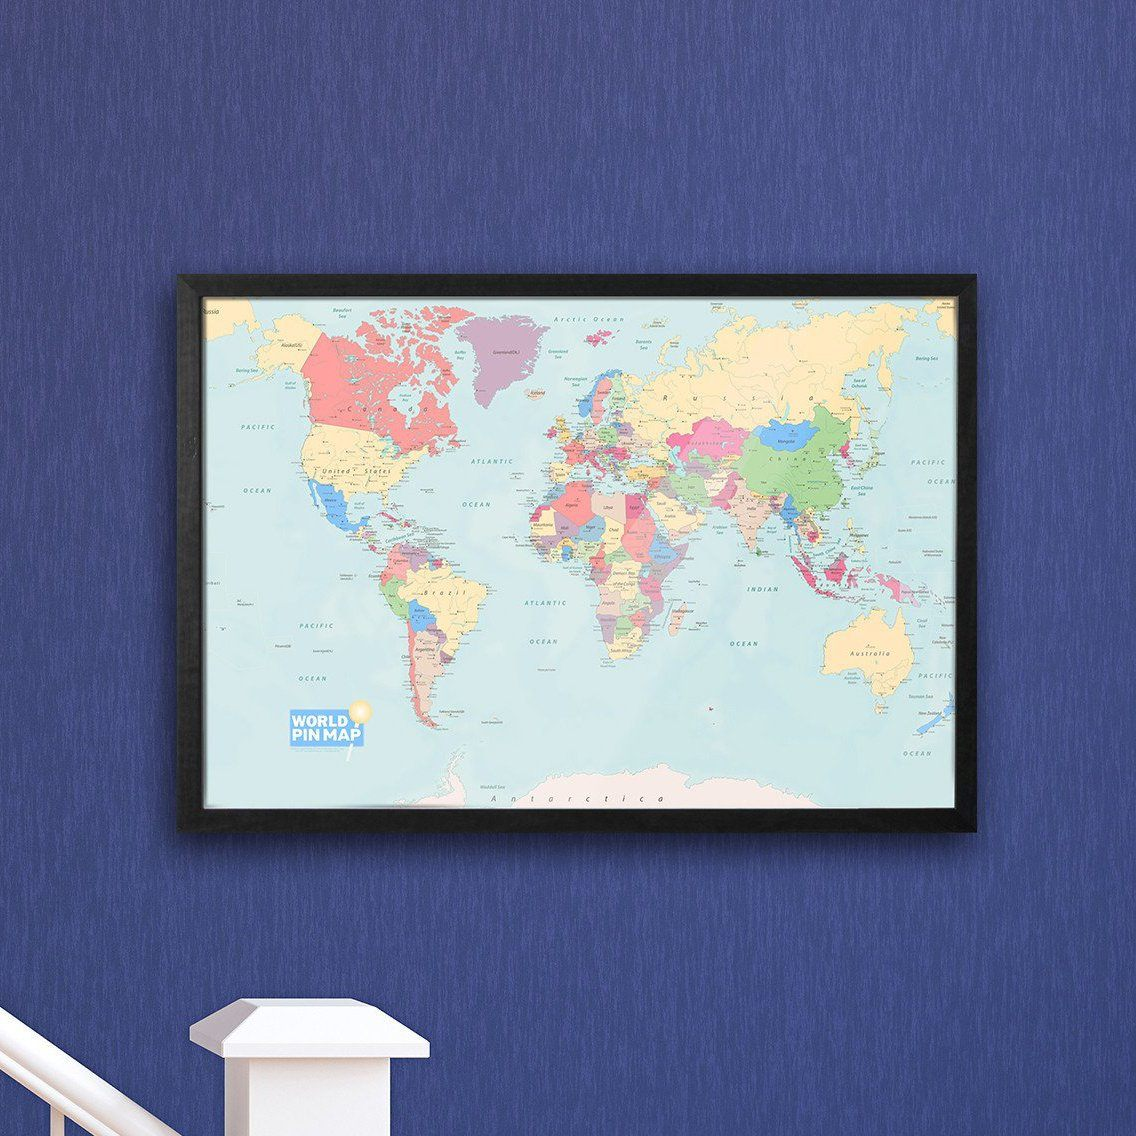 World map pinboard framed map of the world to plan and record world map pinboard framed map of the world to plan and record travel map marketing gumiabroncs Images